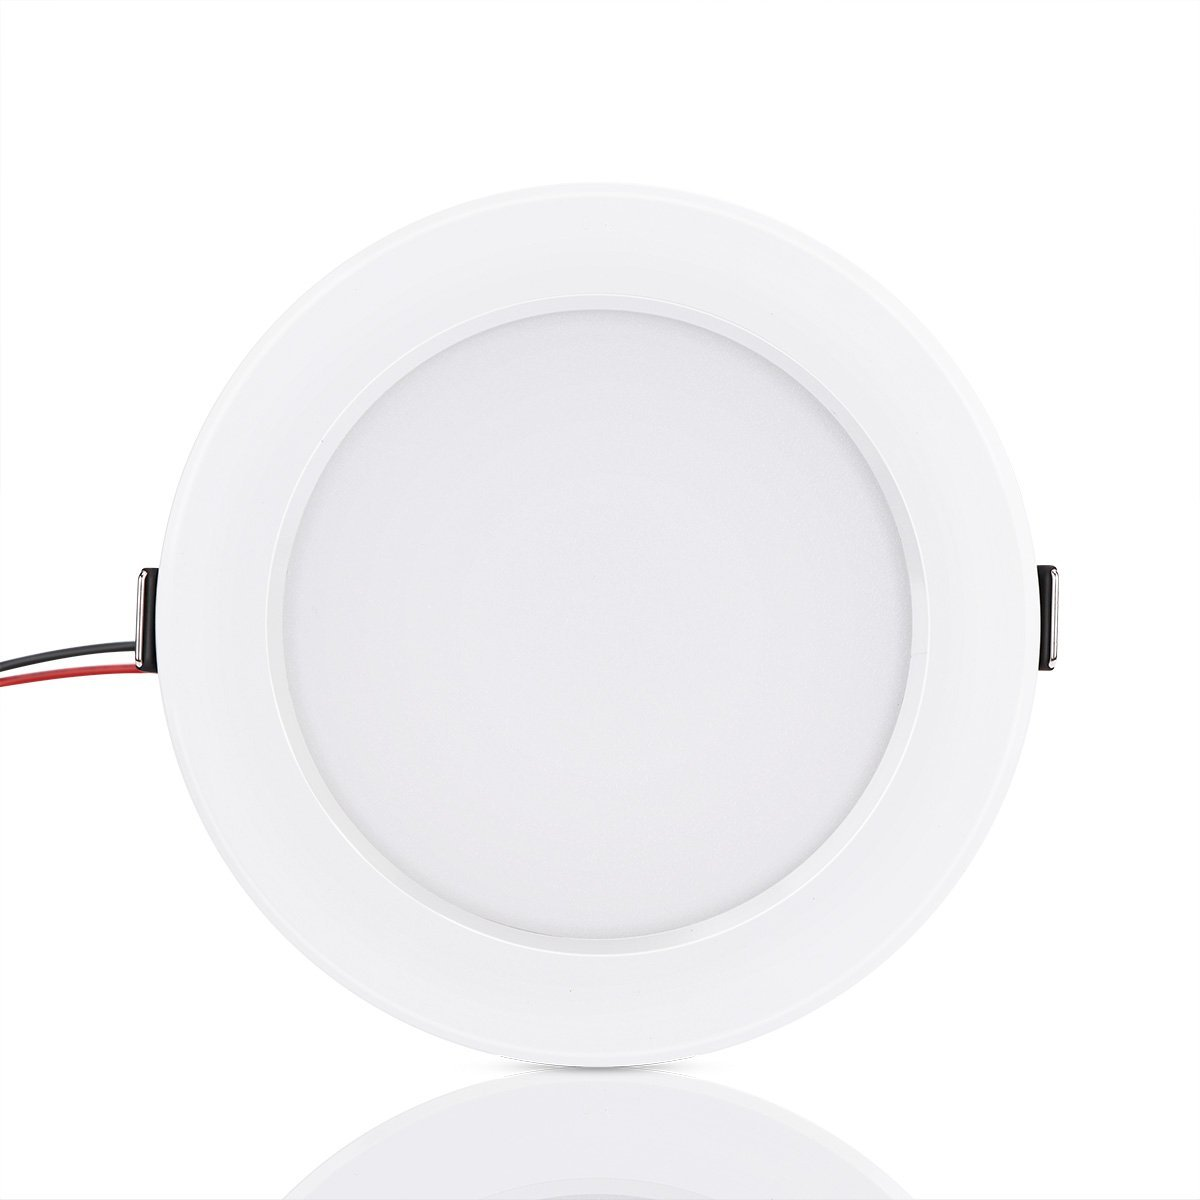 Round RGB LED Panel Light Concealed Recessed Ceiling Lamp Downlight 10W with Remote Control AC 85-265V